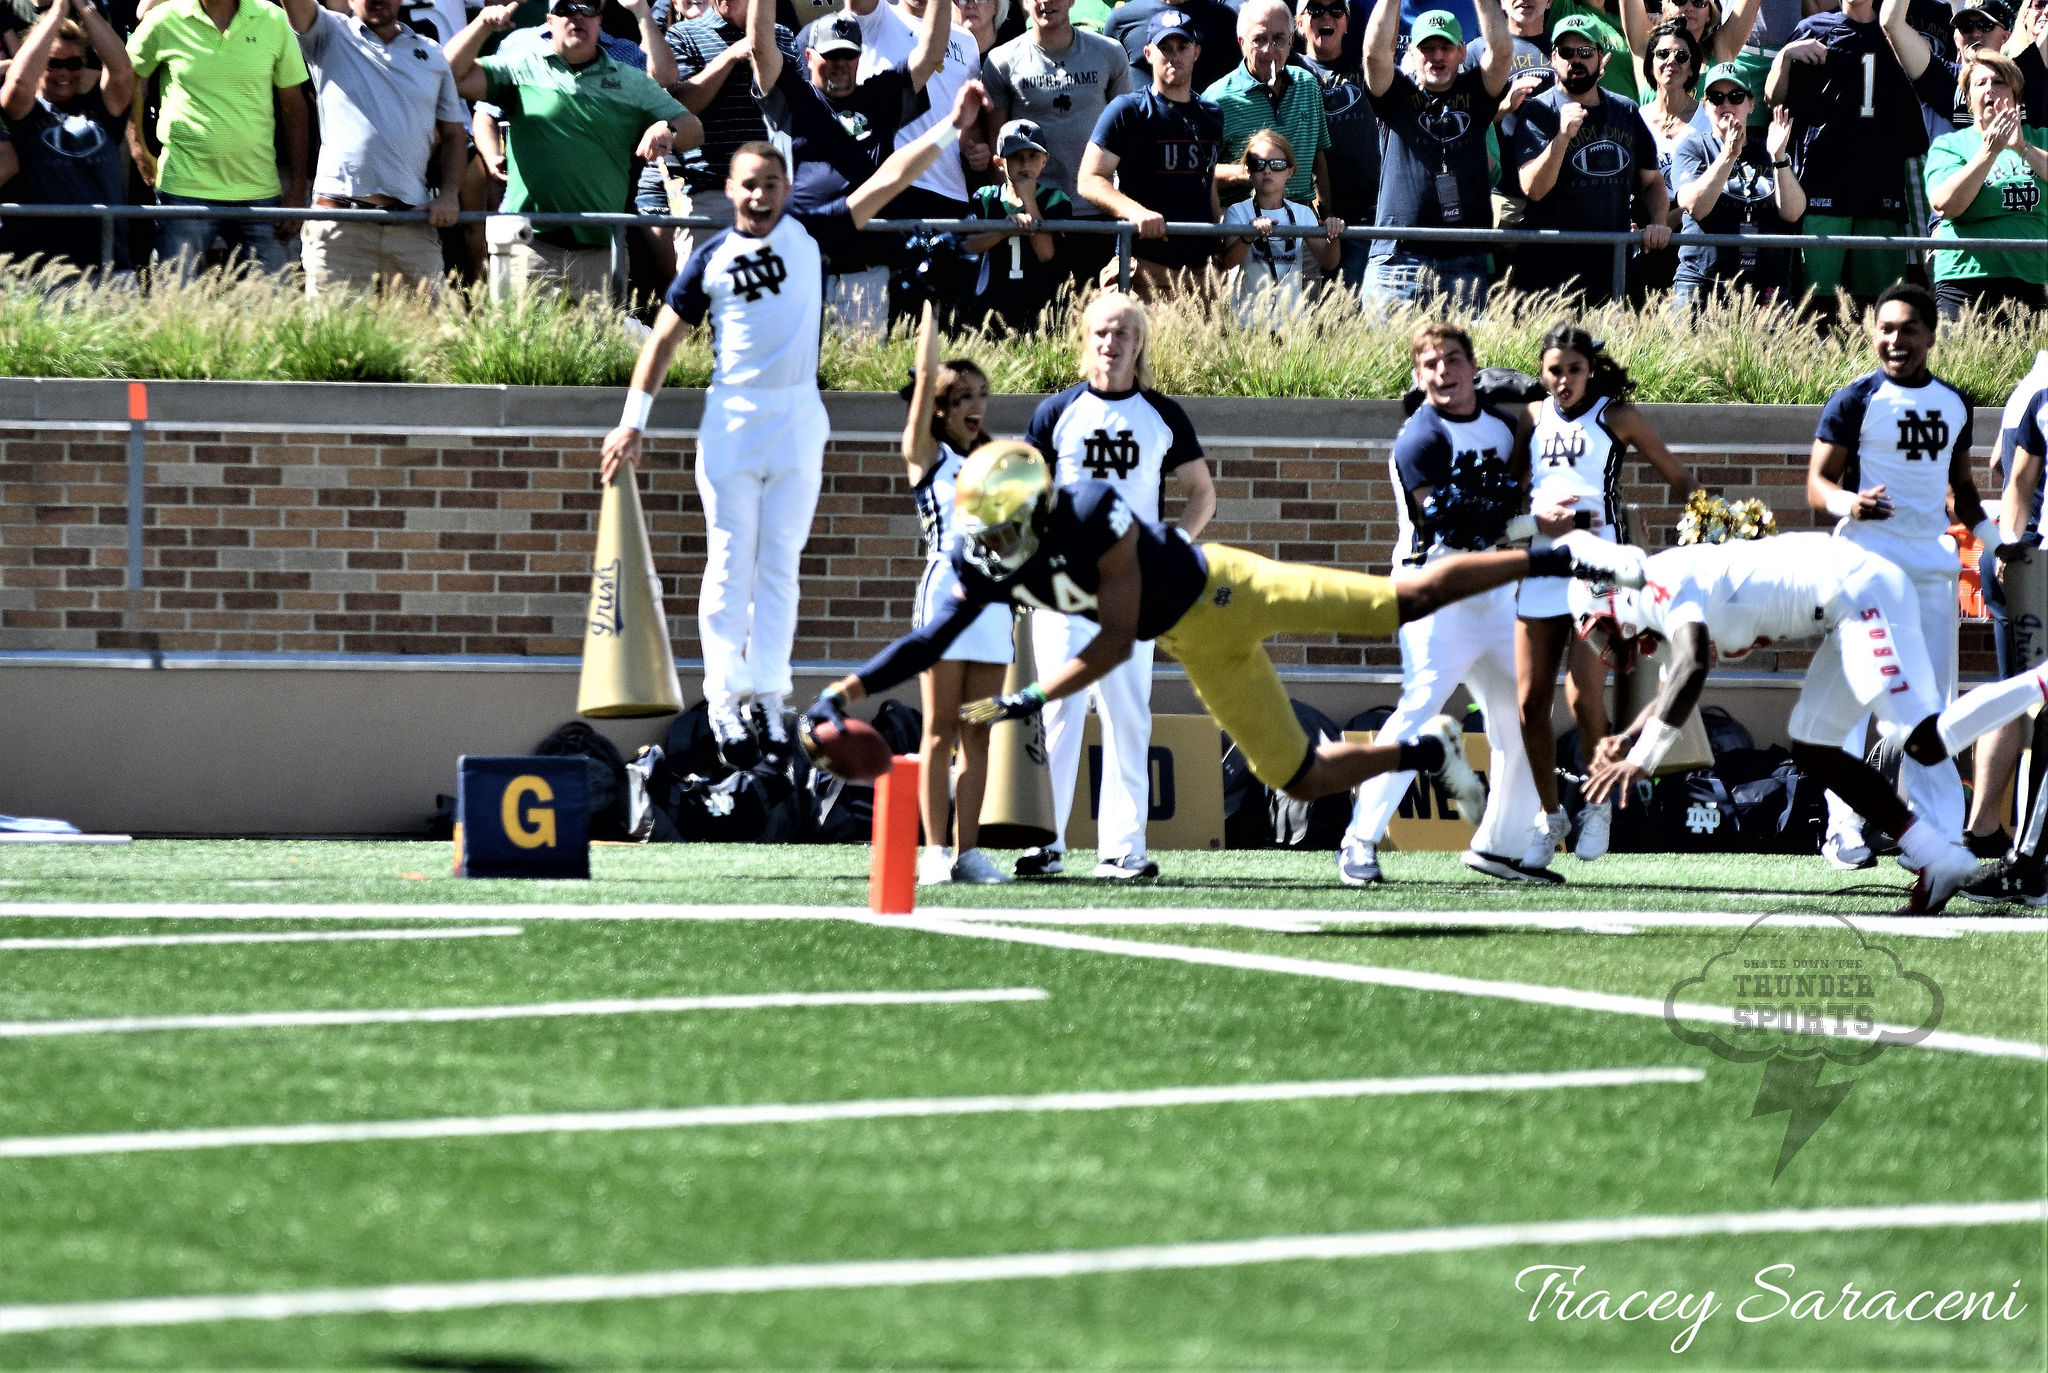 ND Football: Hamilton Not Afraid To Take His Shot